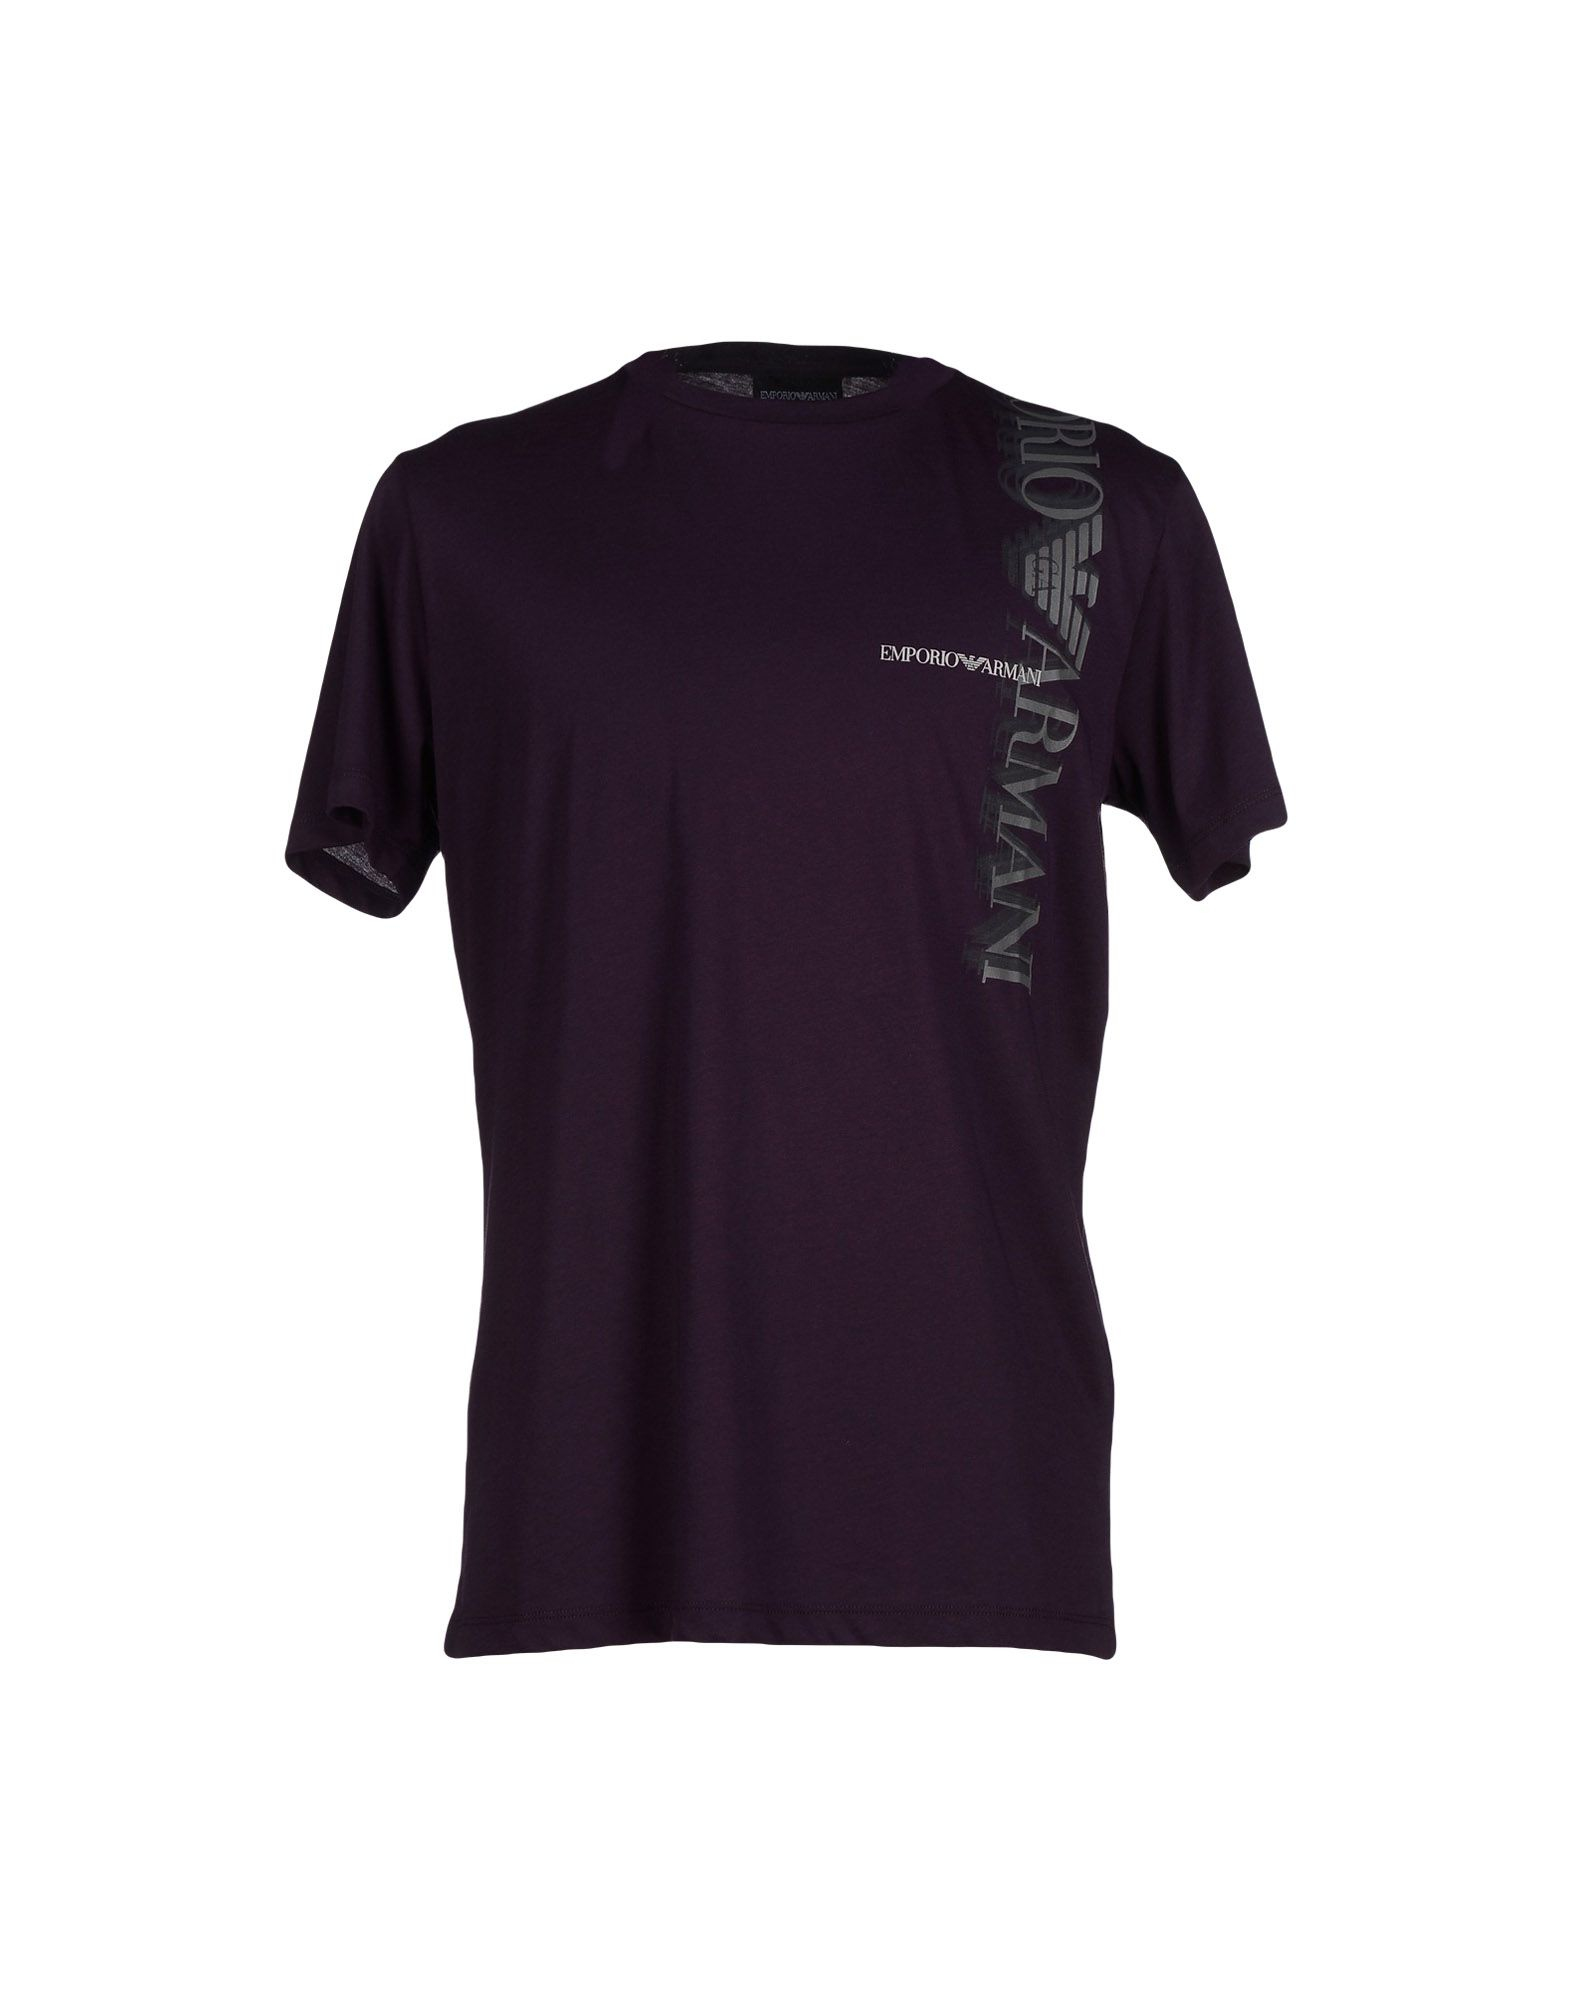 emporio armani t shirt in purple for men lyst. Black Bedroom Furniture Sets. Home Design Ideas